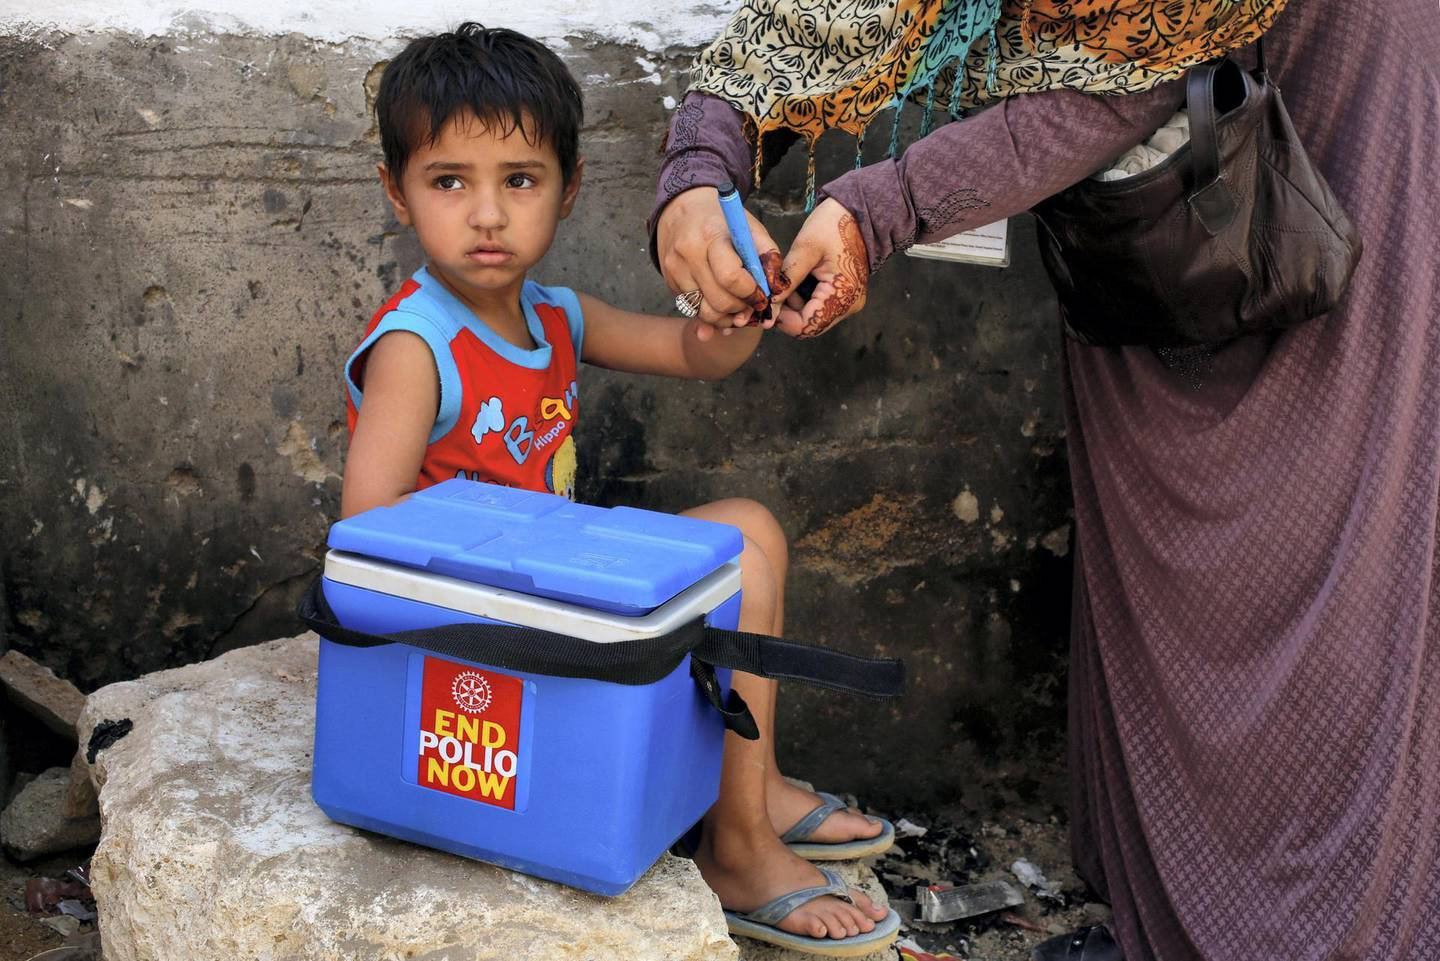 A boy gets his finger marked, after he is administered polio vaccine drops, during an anti-polio campaign, in a low-income neighbourhood in Karachi, Pakistan April 9, 2018. REUTERS/Akhtar Soomro